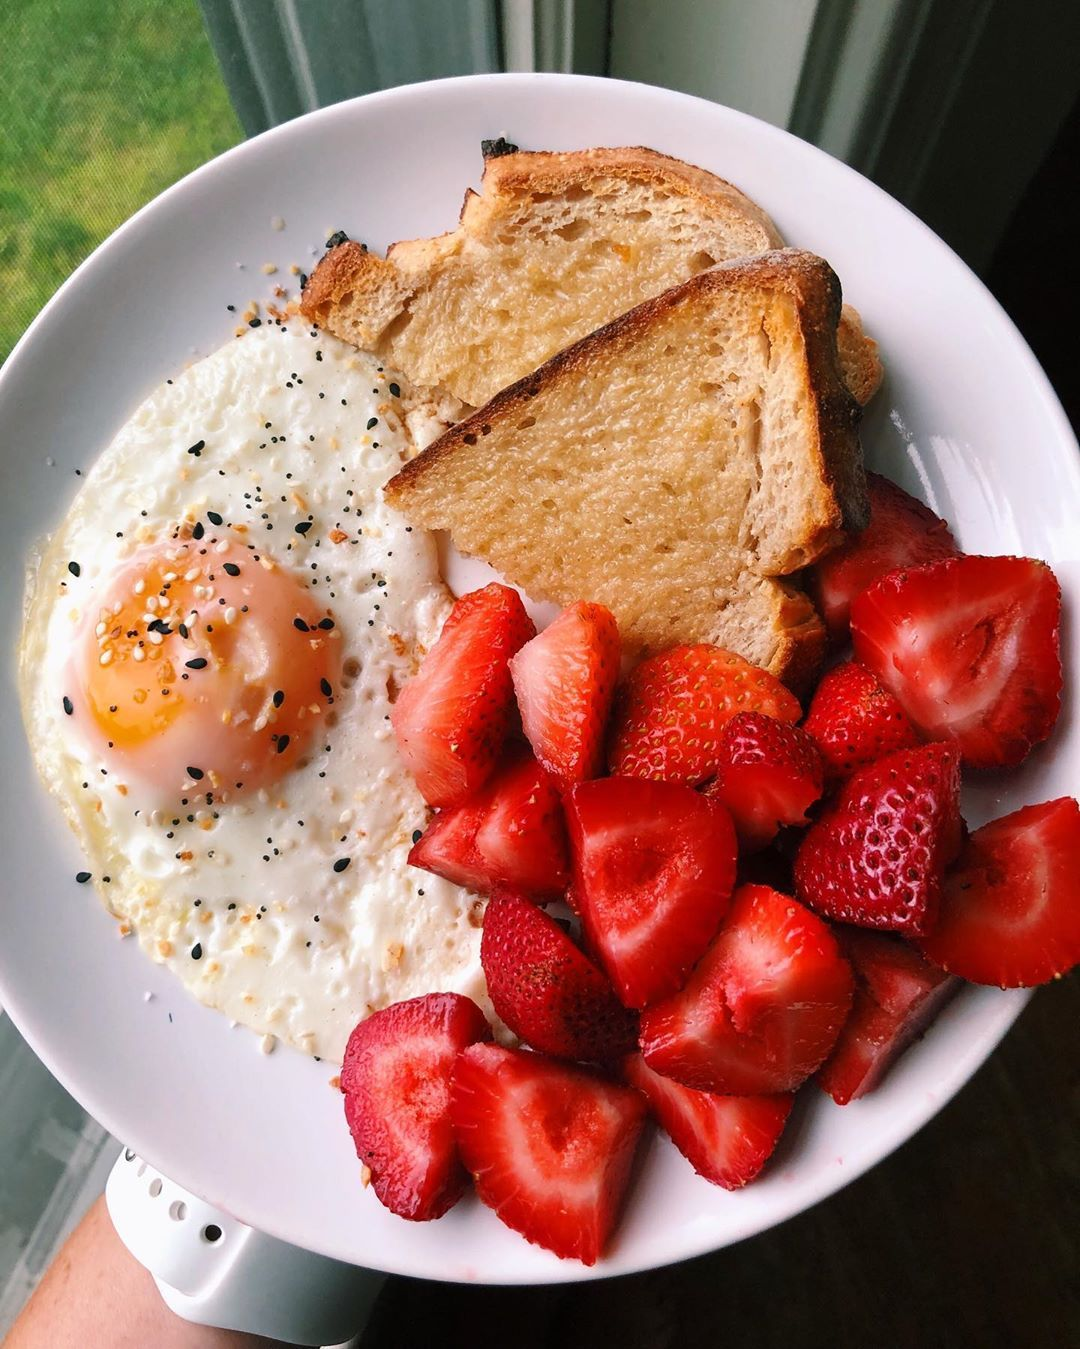 Annamarie On Instagram Happy Sunday Friends Sharing This Simple Breakfast From Earlier This Week Because I Aesthetic Food Yummy Food Healthy Snacks Recipes